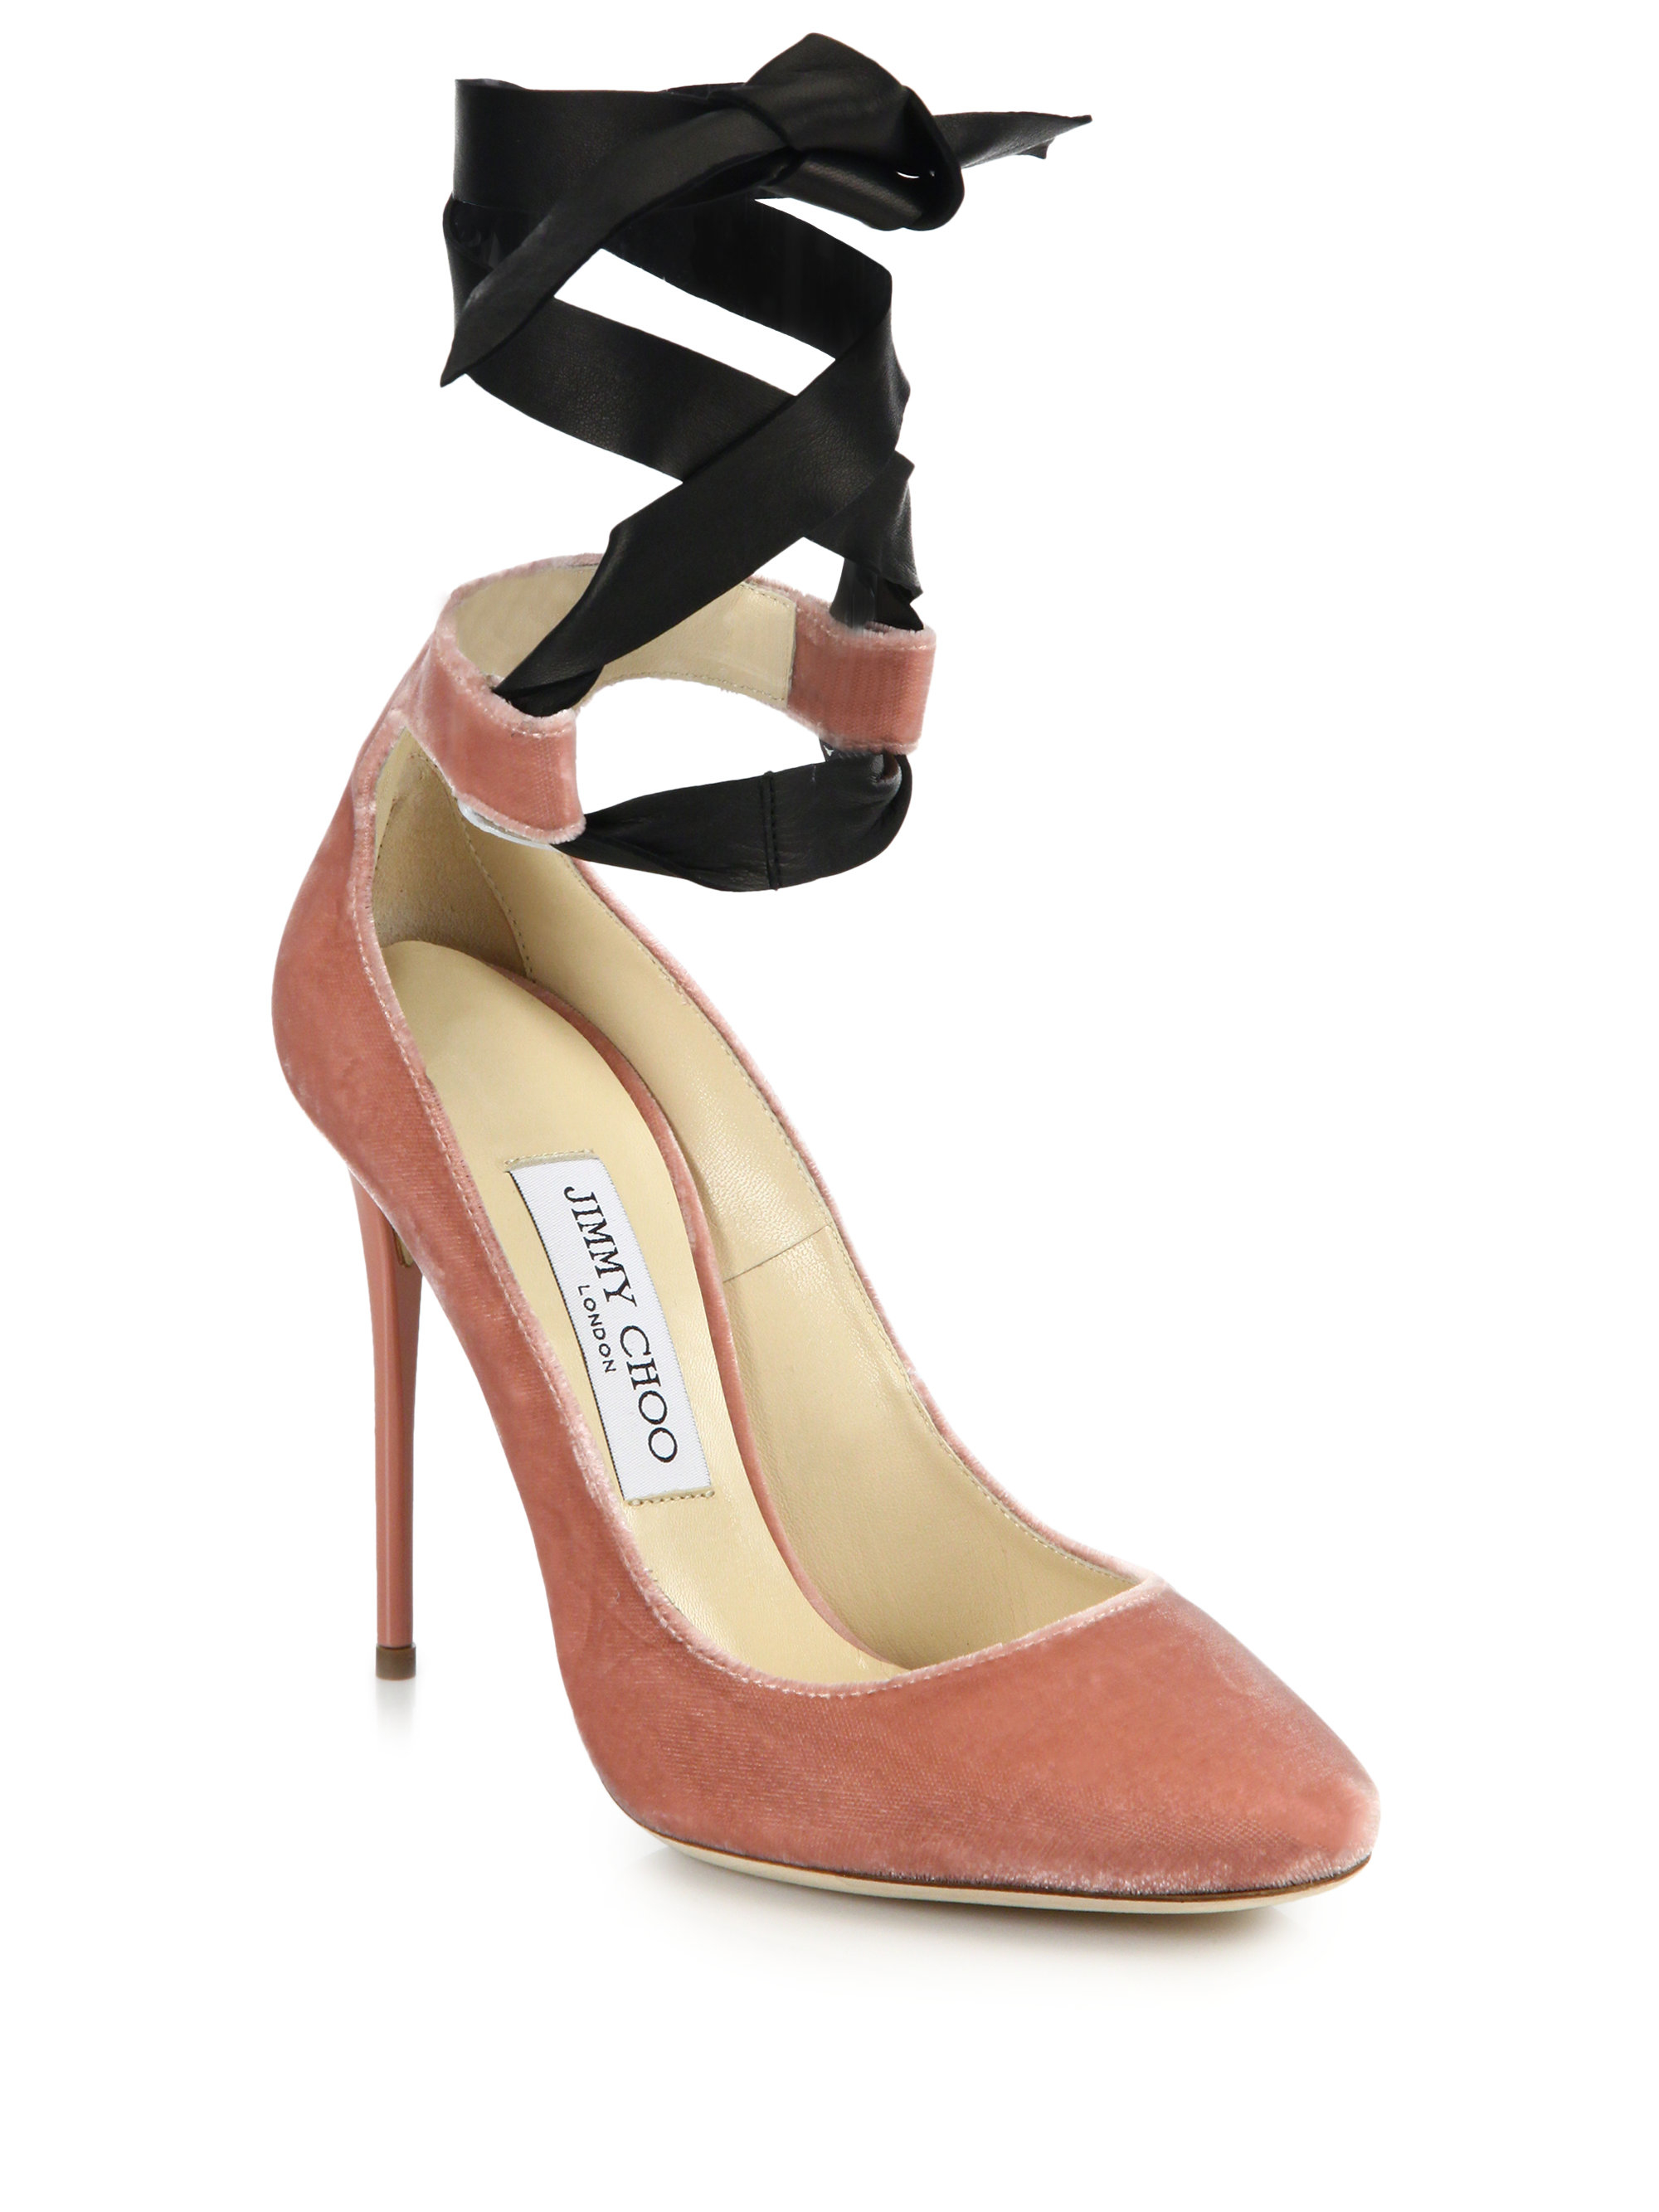 48e427b2da05 ... germany lyst jimmy choo rosana velvet leather ankle tie pumps in pink  4c420 8f16f